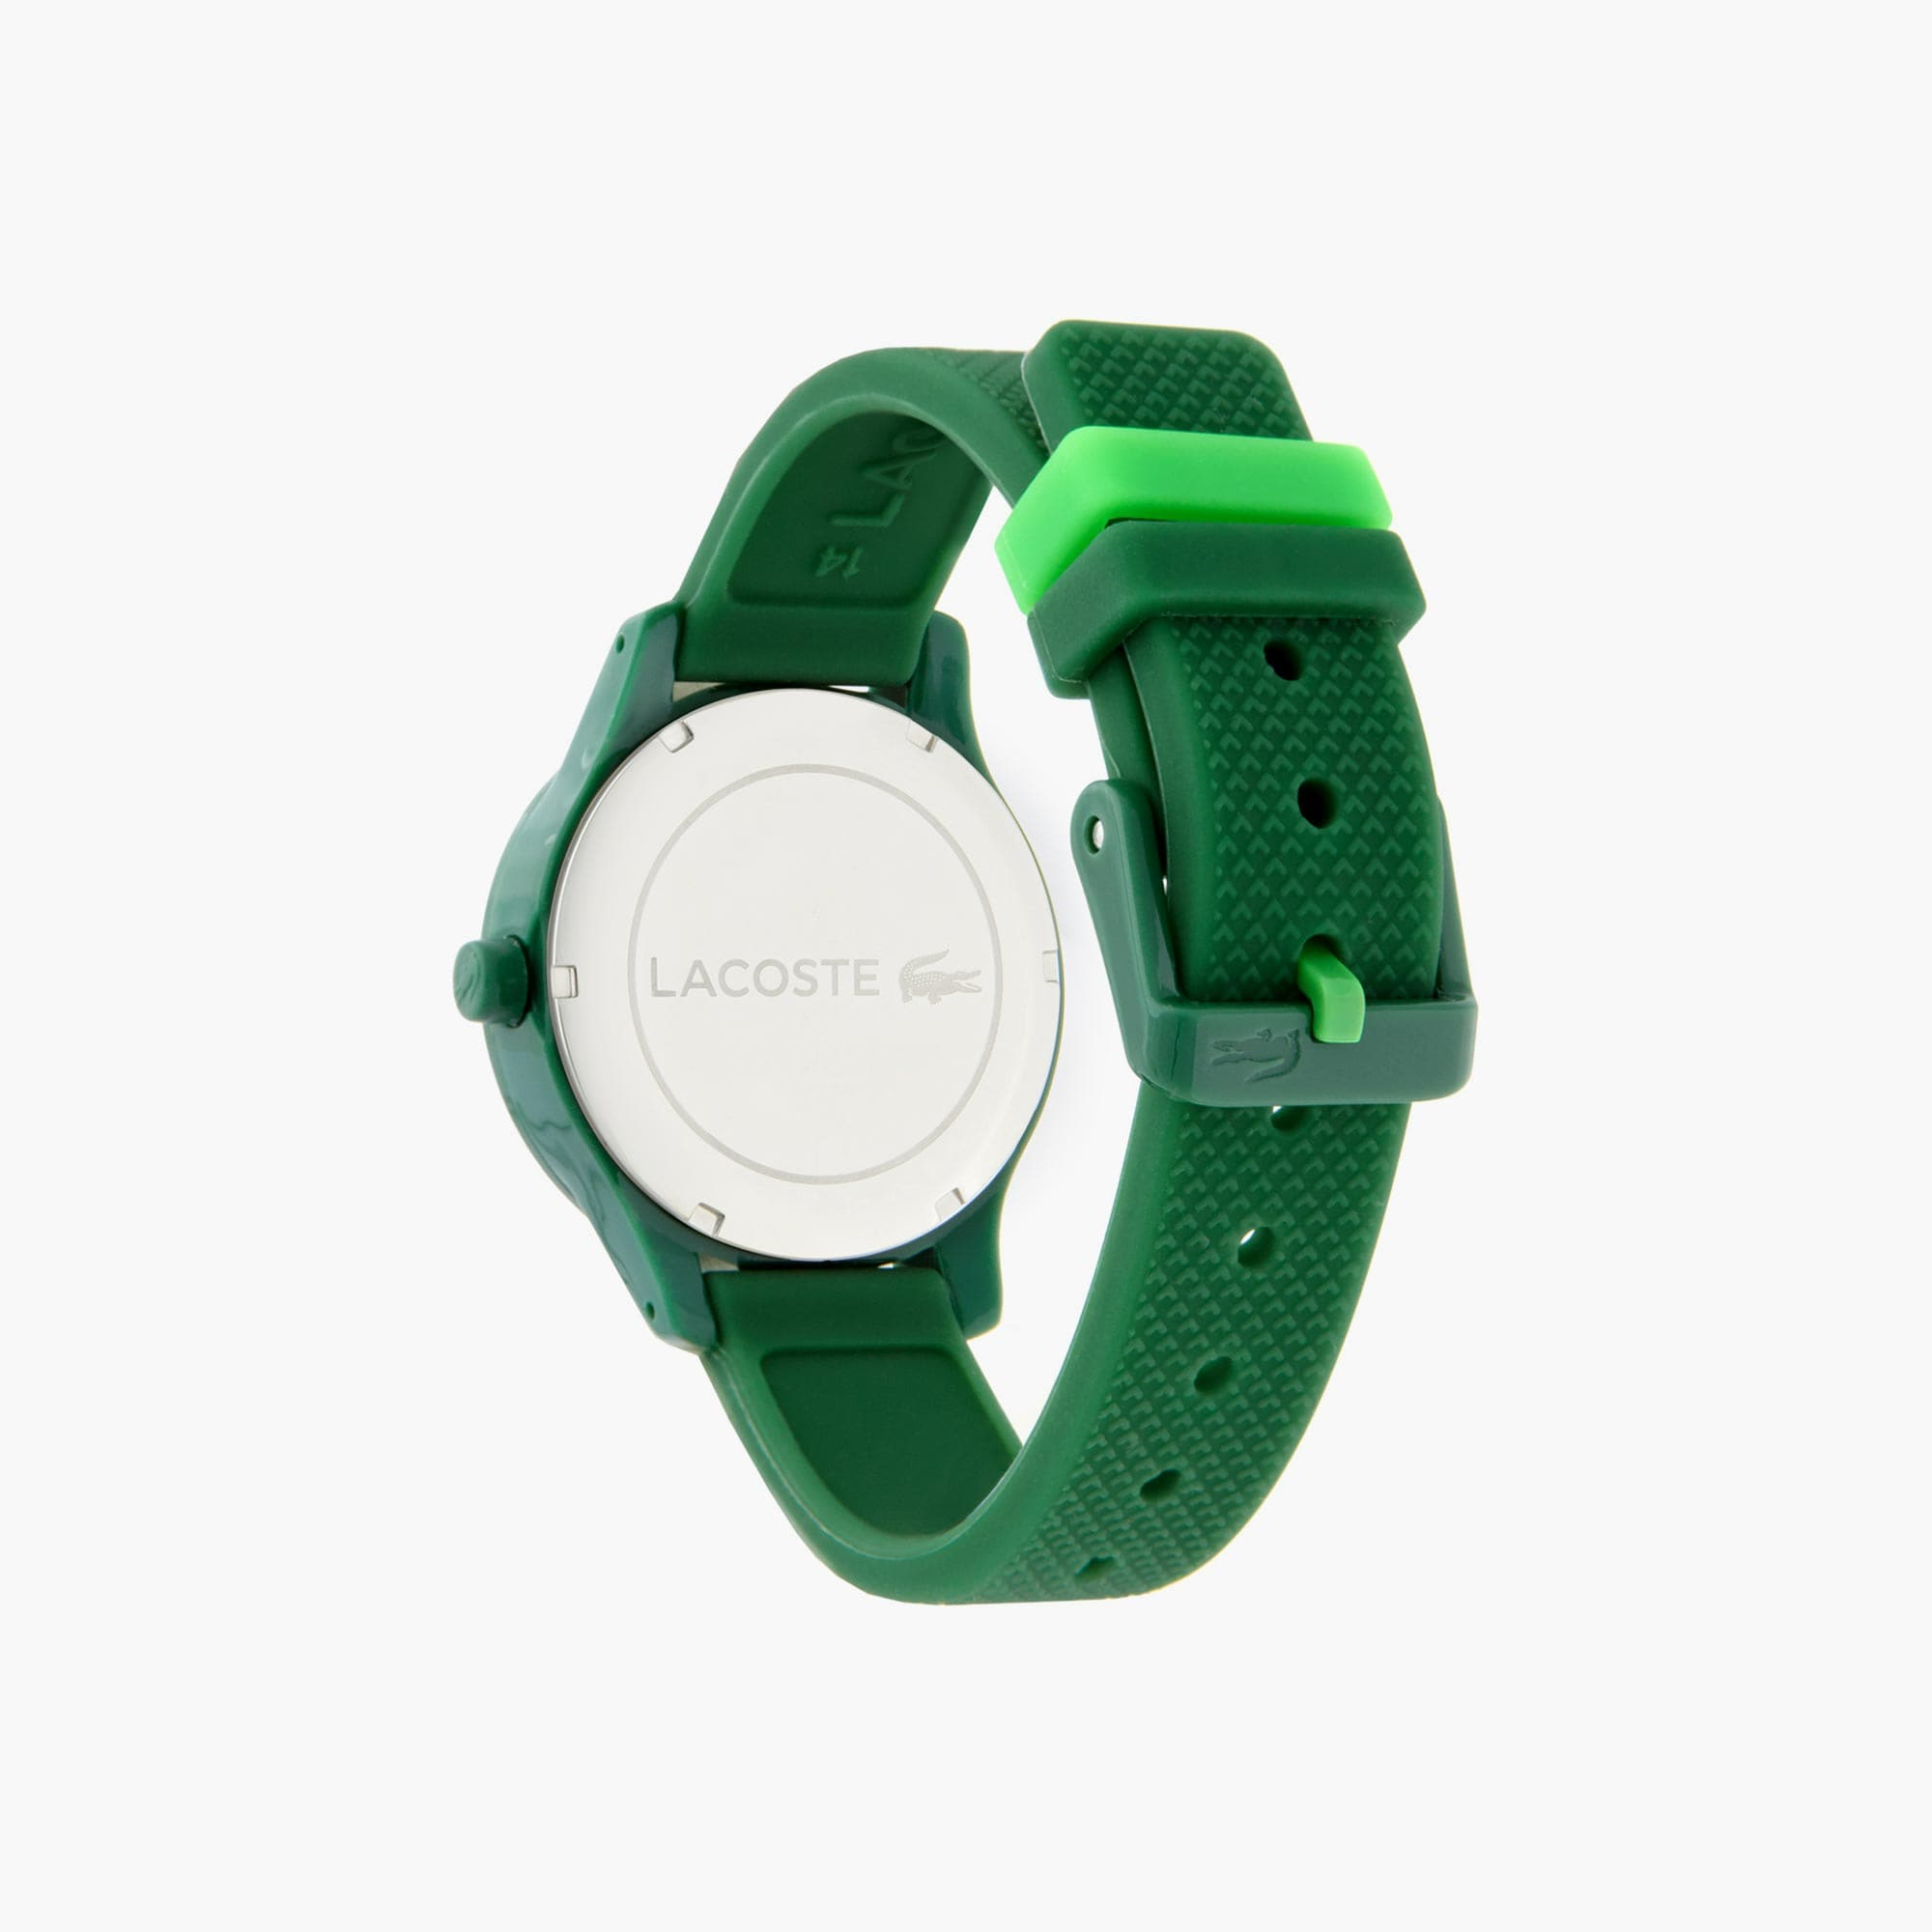 Kids Lacoste 12.12 Watch with Green Silicone Strap